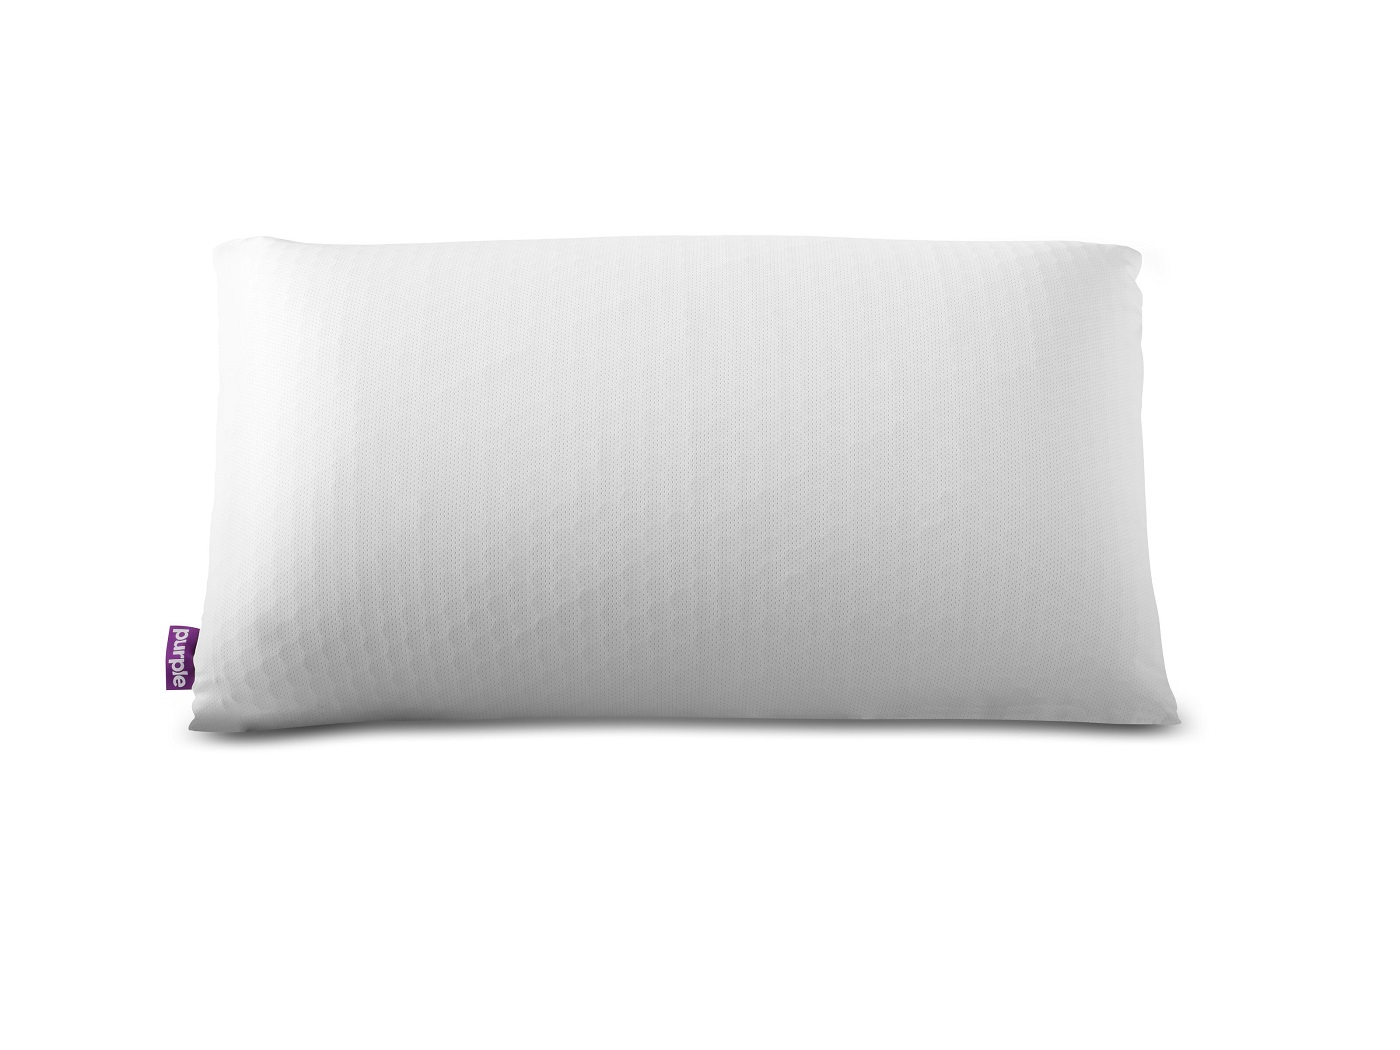 The Harmony Purple High Profile Pillow